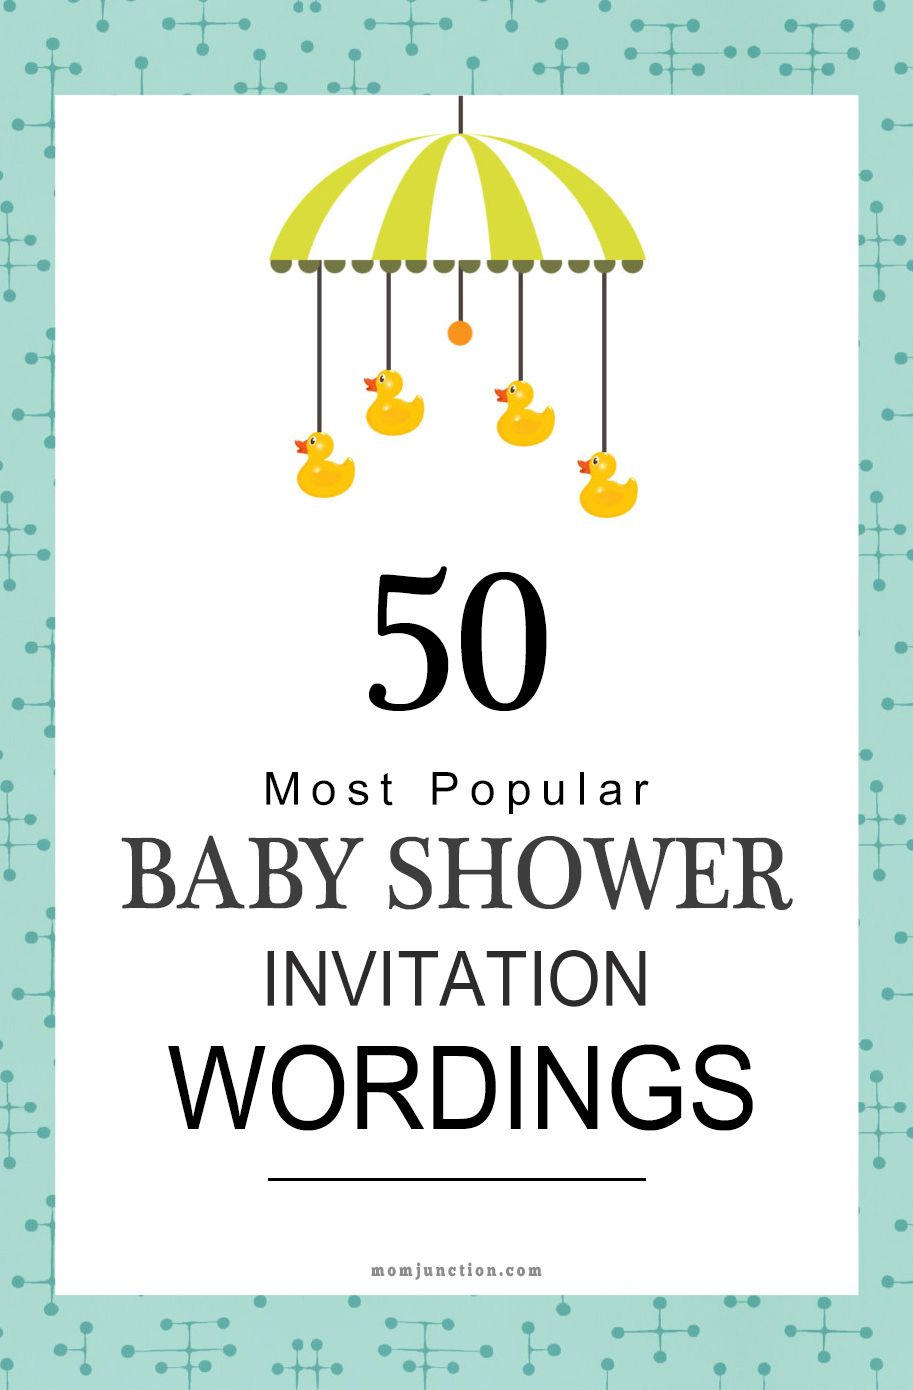 75 most popular baby shower invitation wordings in 2018 food 50 most popular baby shower invitation wordings momjunction will help you find the right words to create a memorable and fun invitation to welcome the baby filmwisefo